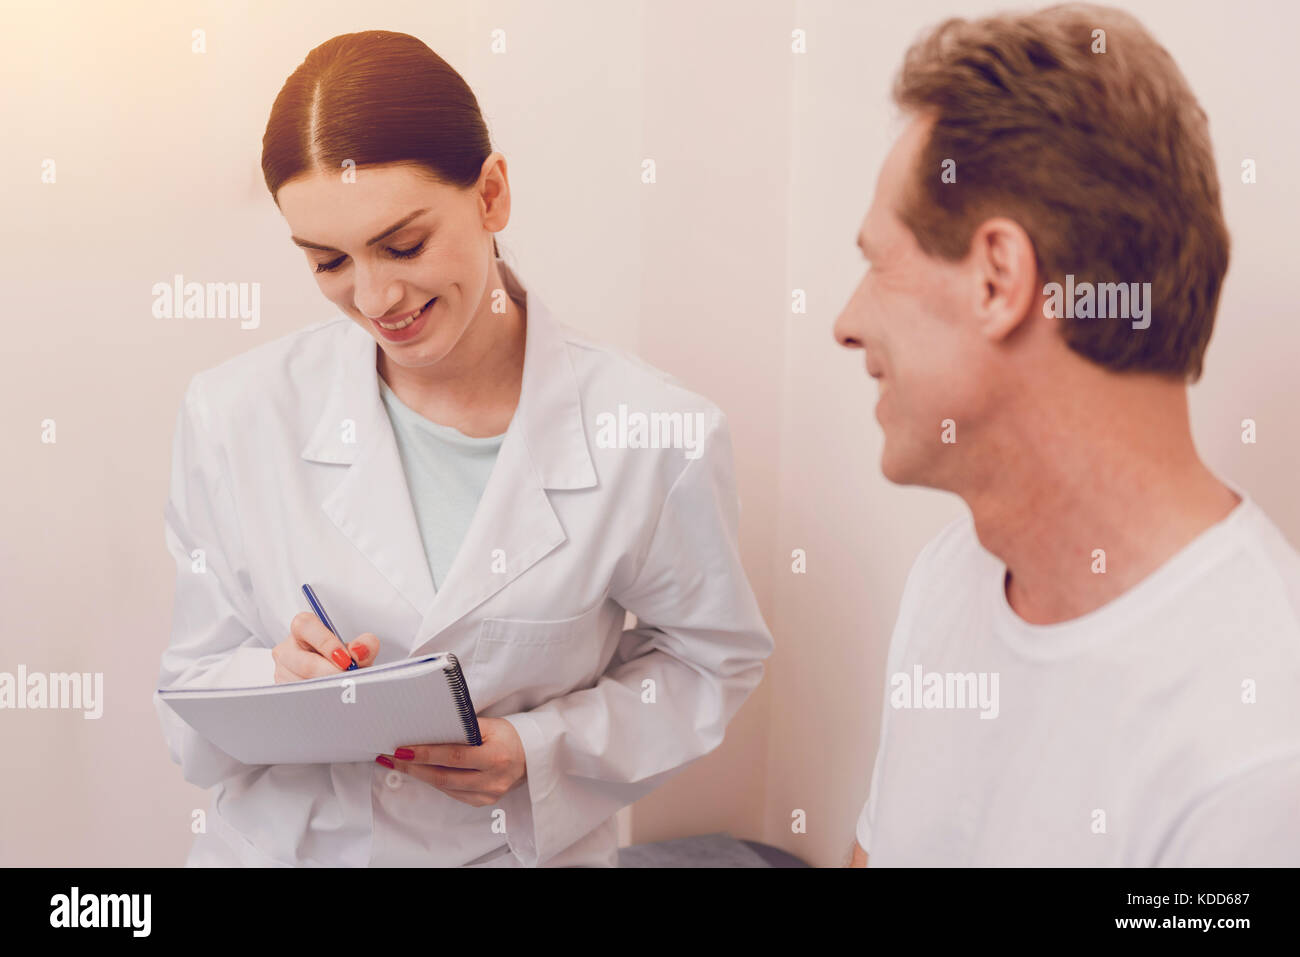 Attentive young doctor making notes Stock Photo